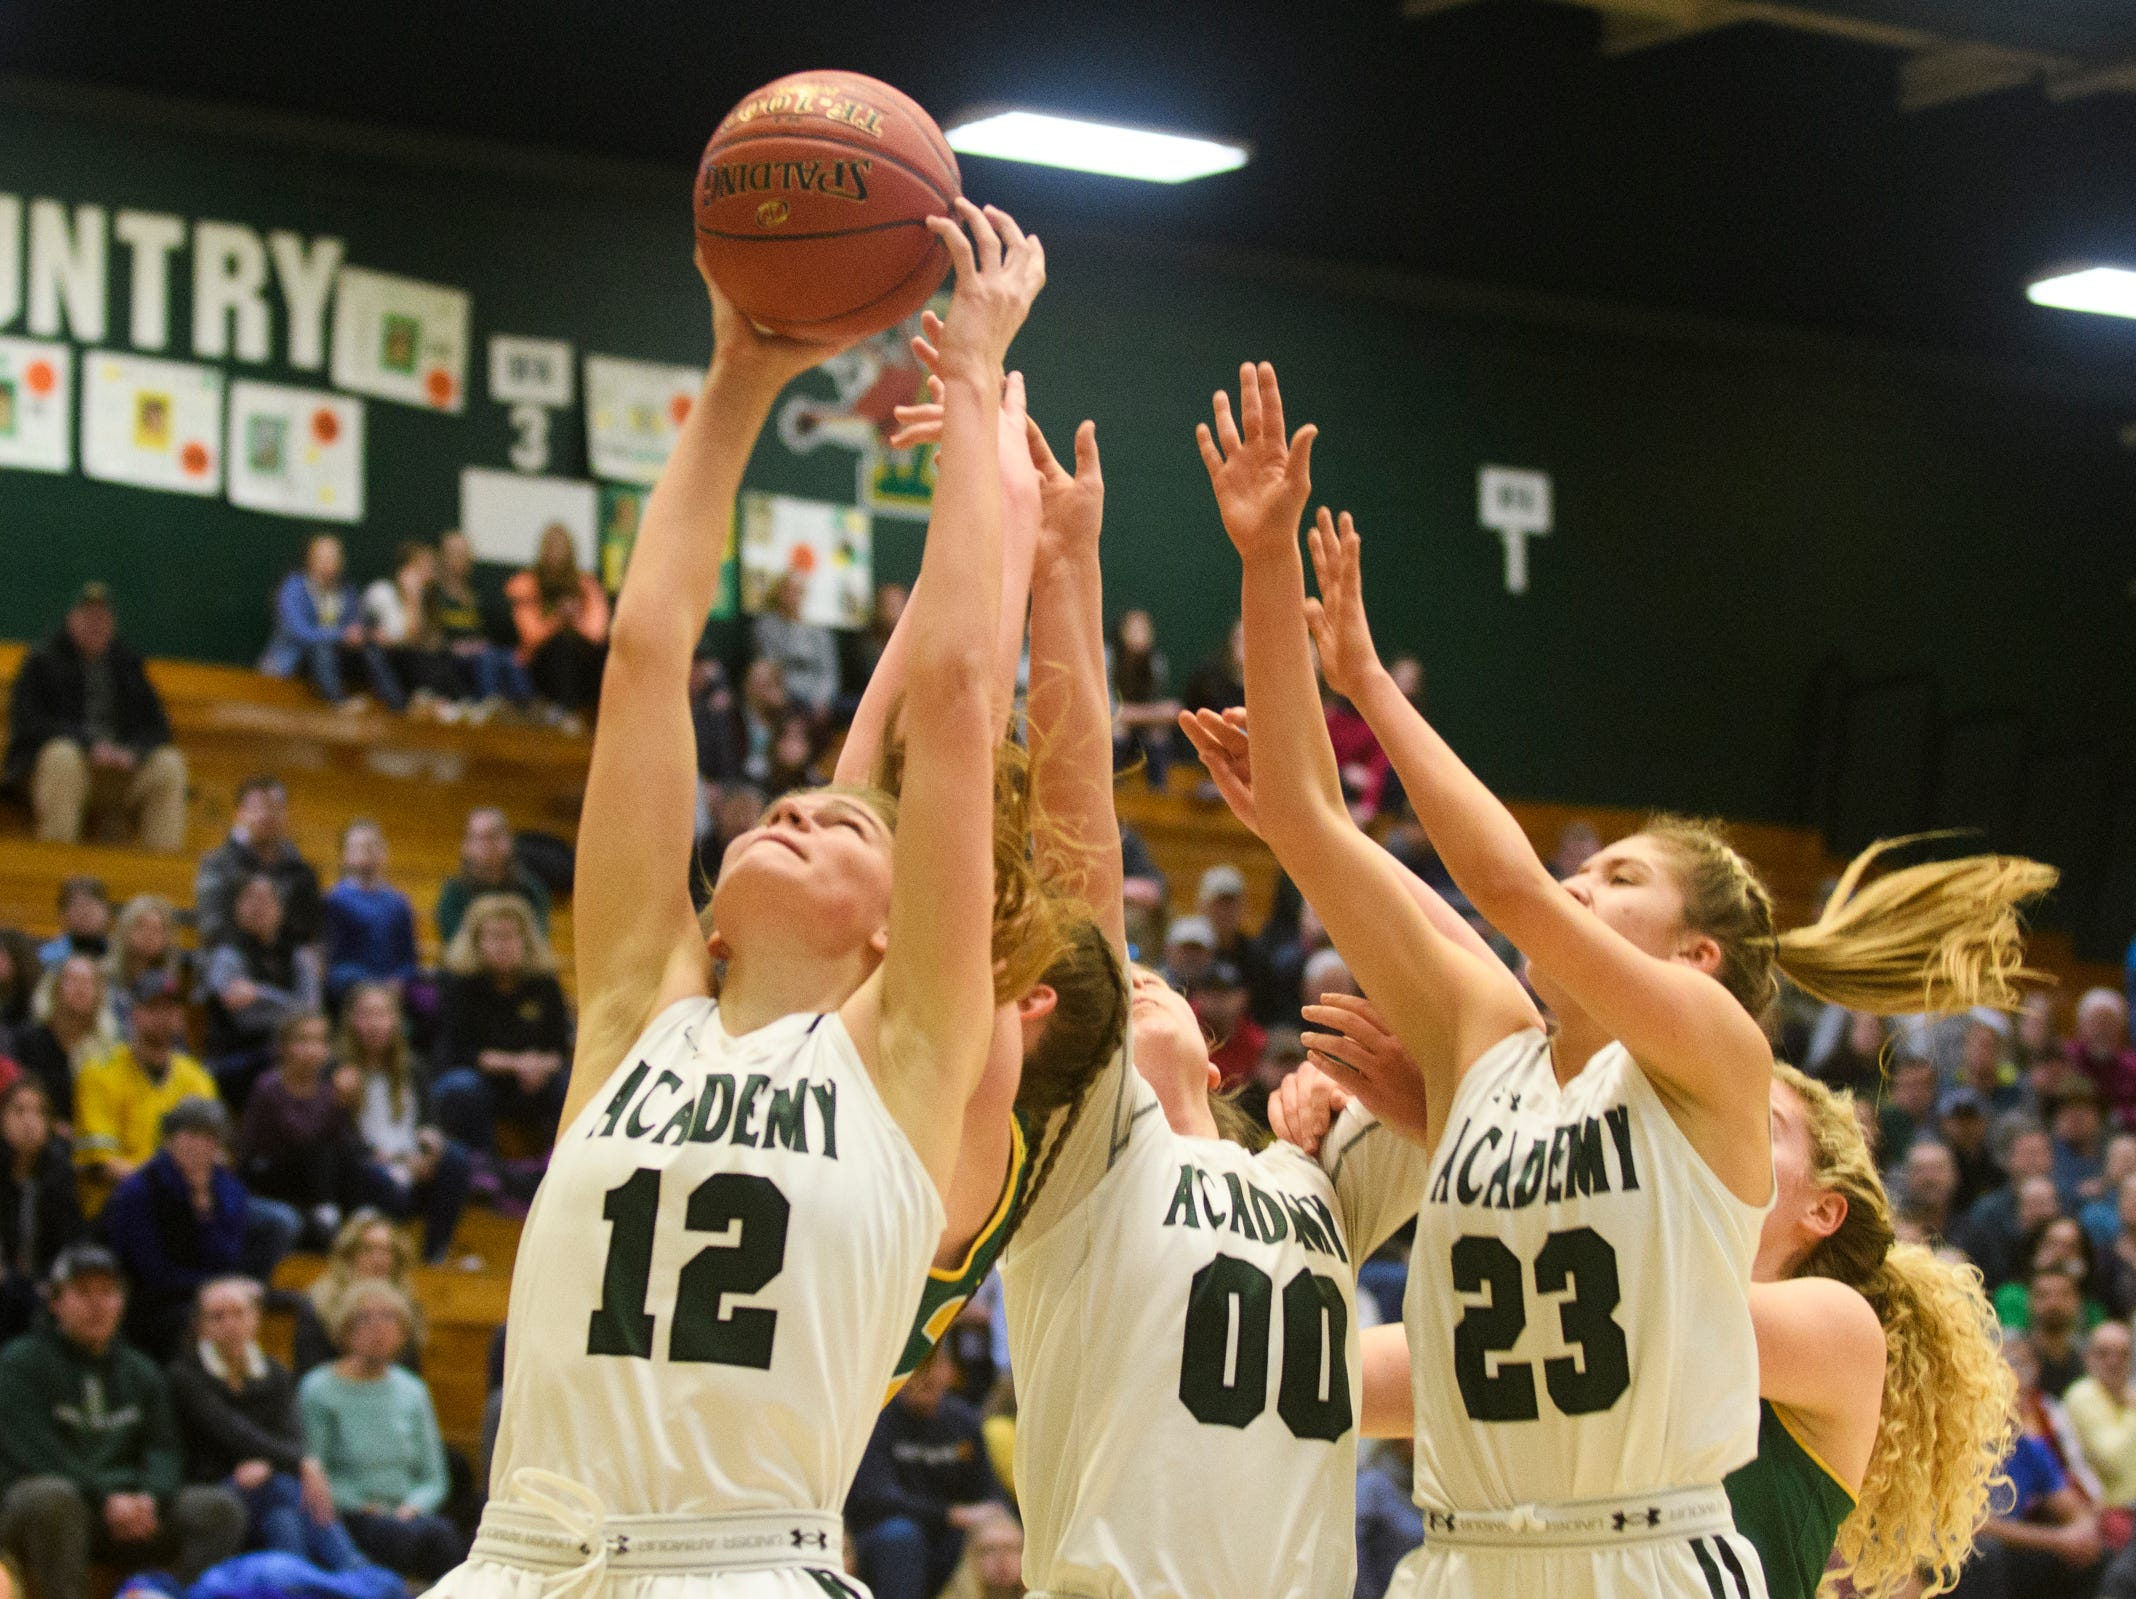 St. Johnsbury's Lara Rohkohl (12) leaps to grab the rebound during the girls semifinal basketball game between the BFA St. Albans Comets and the St. Johnsbury Hilltoppers at Patrick Gym on Wednesday night March 6, 2019 in Burlington, Vermont.